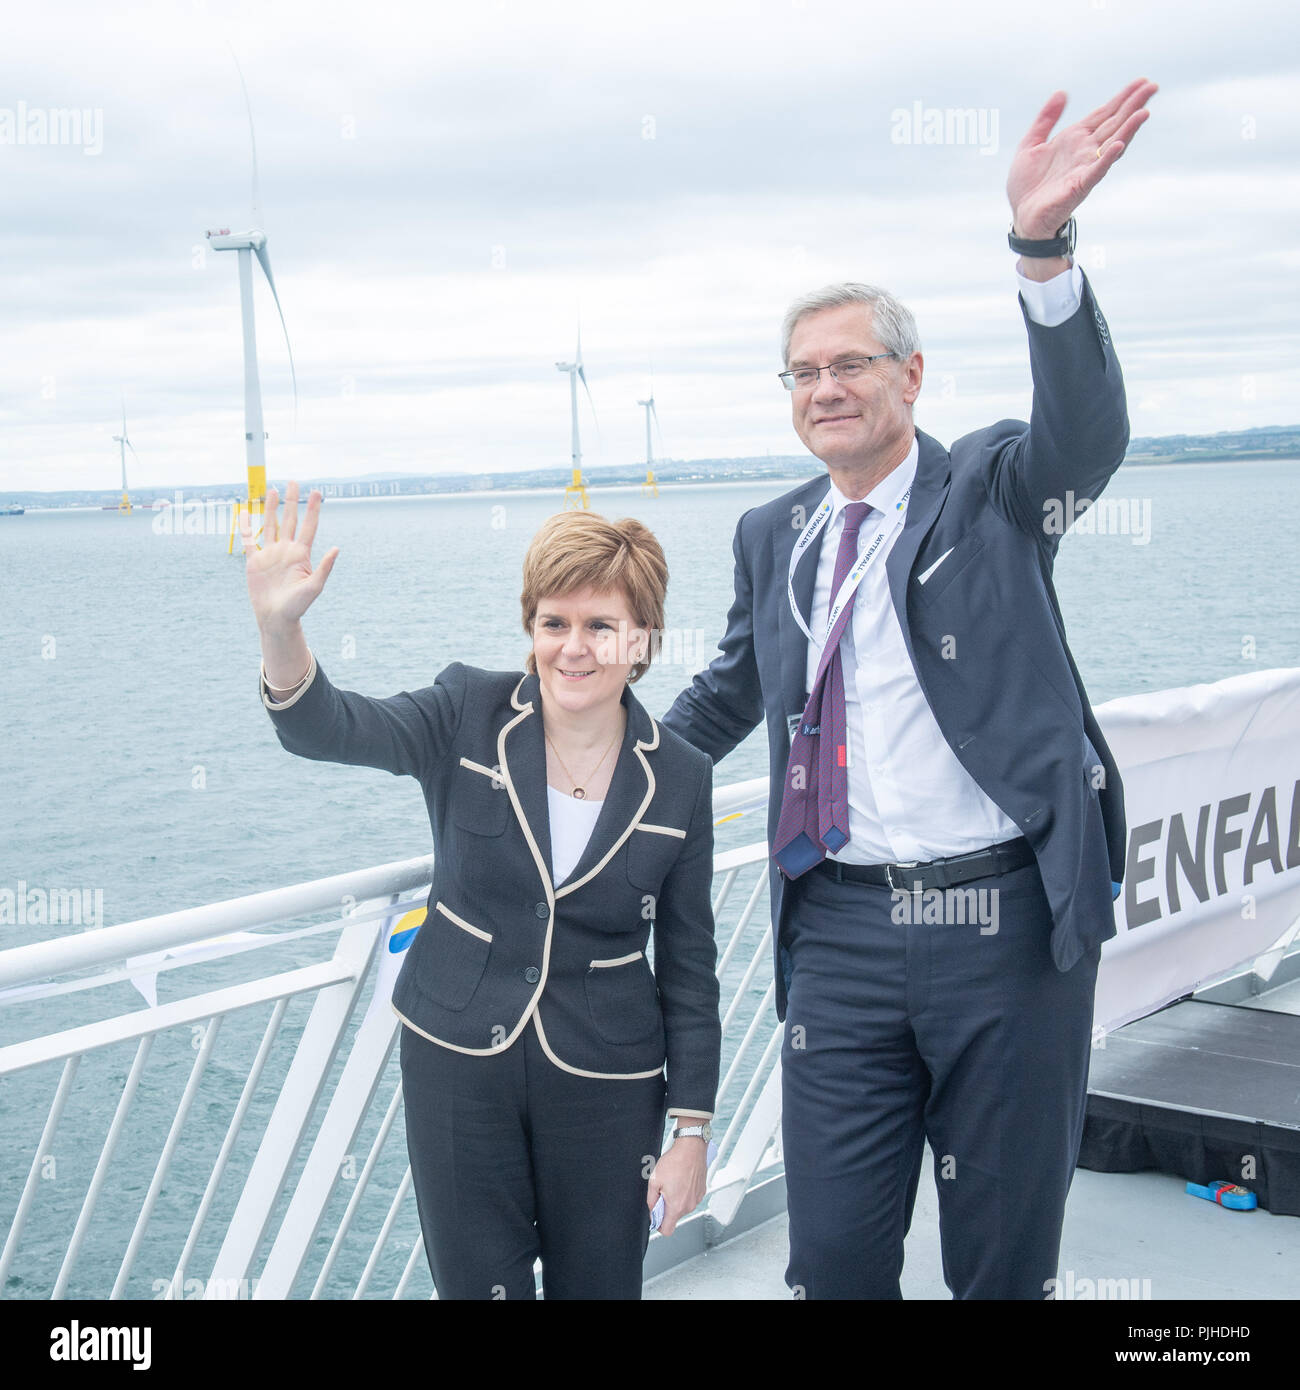 First Minister Nicola Sturgeon and Vatenfall CEO Magnus Hall at the opening of Vattenfall's European Offshore Wind Deployment Centre (EOWDC) off the coast of Aberdeen. - Stock Image